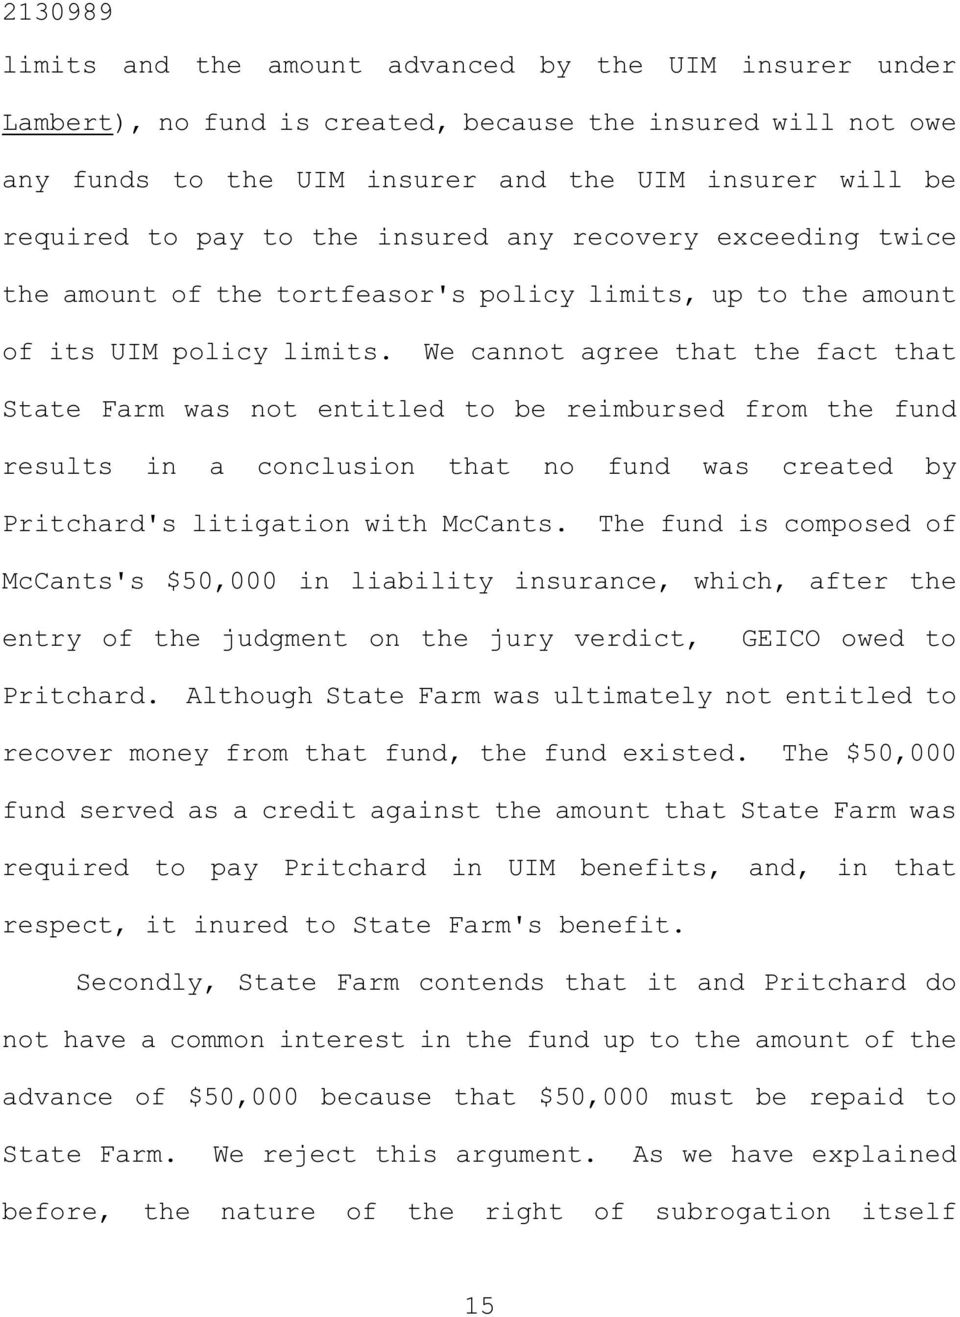 We cannot agree that the fact that State Farm was not entitled to be reimbursed from the fund results in a conclusion that no fund was created by Pritchard's litigation with McCants.